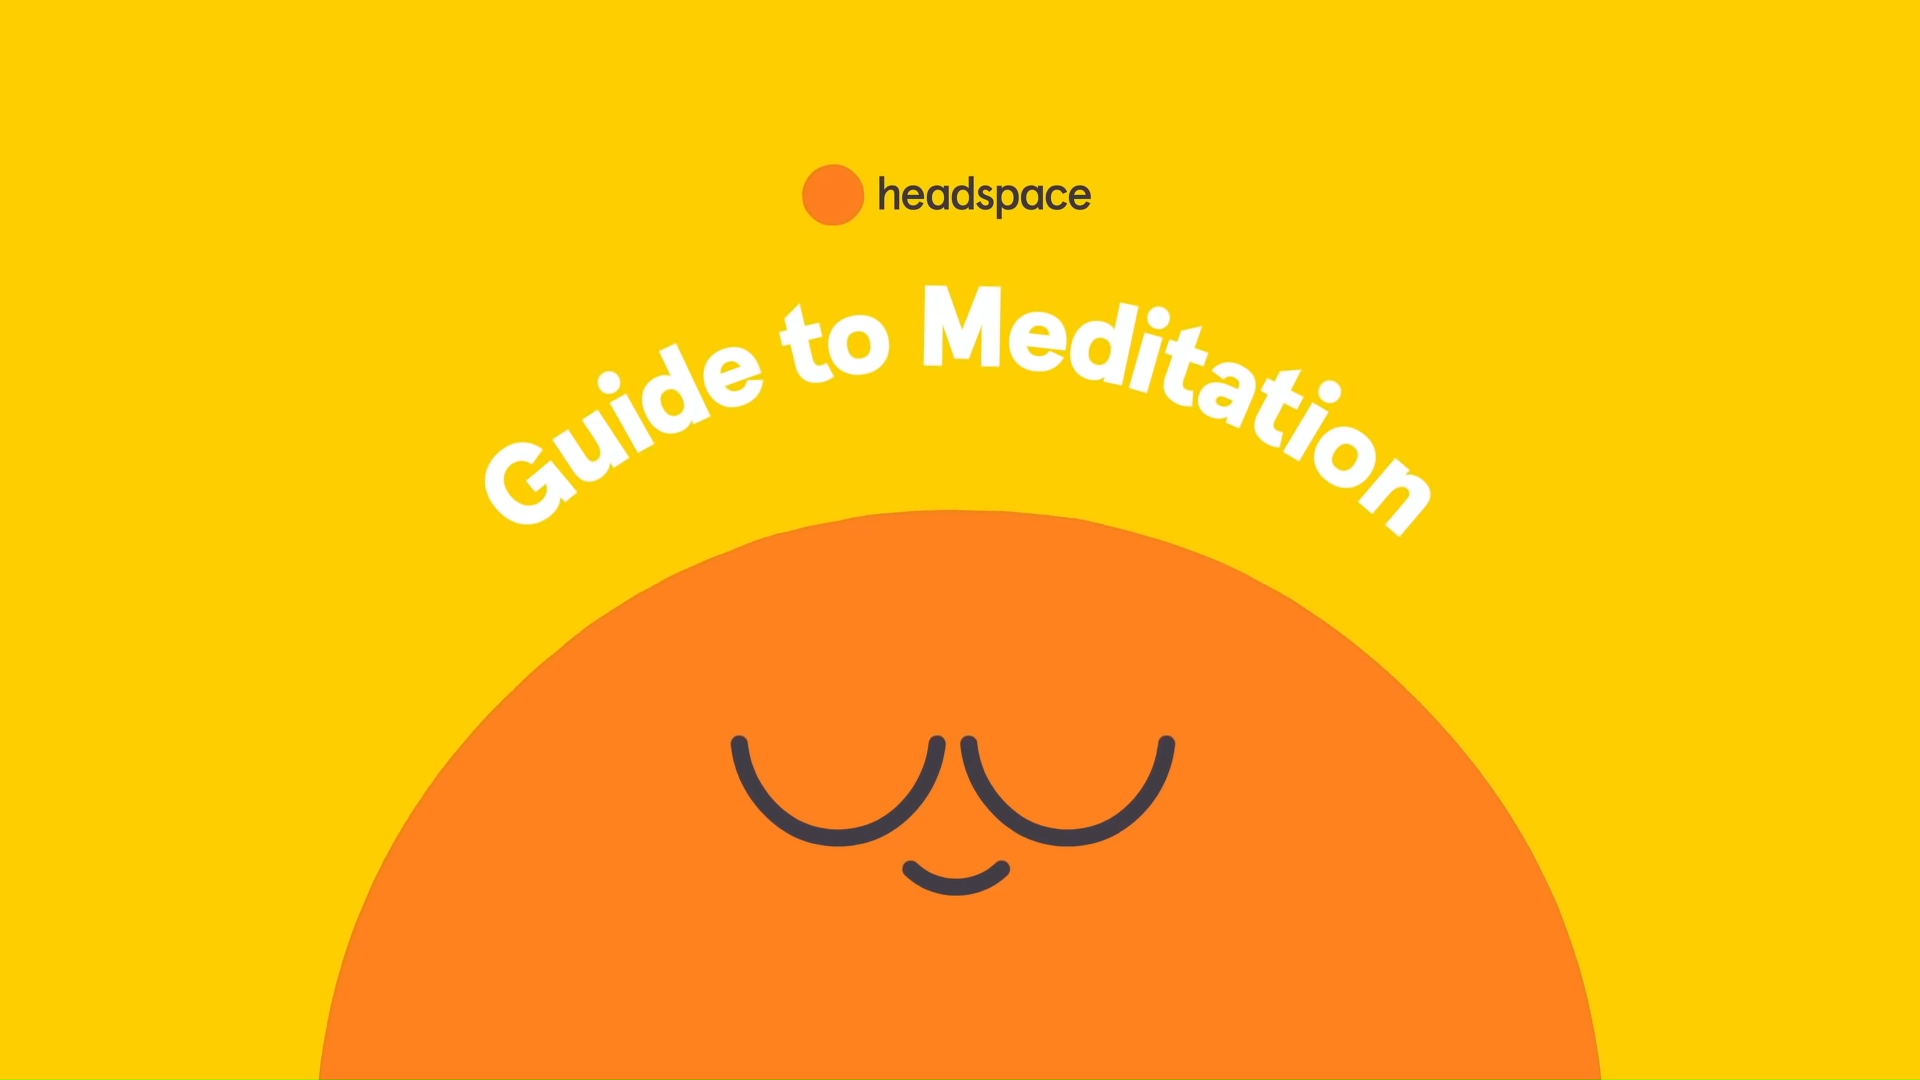 Netflix Partners Up With Headspace For Three New Shows on Meditation and Relaxation